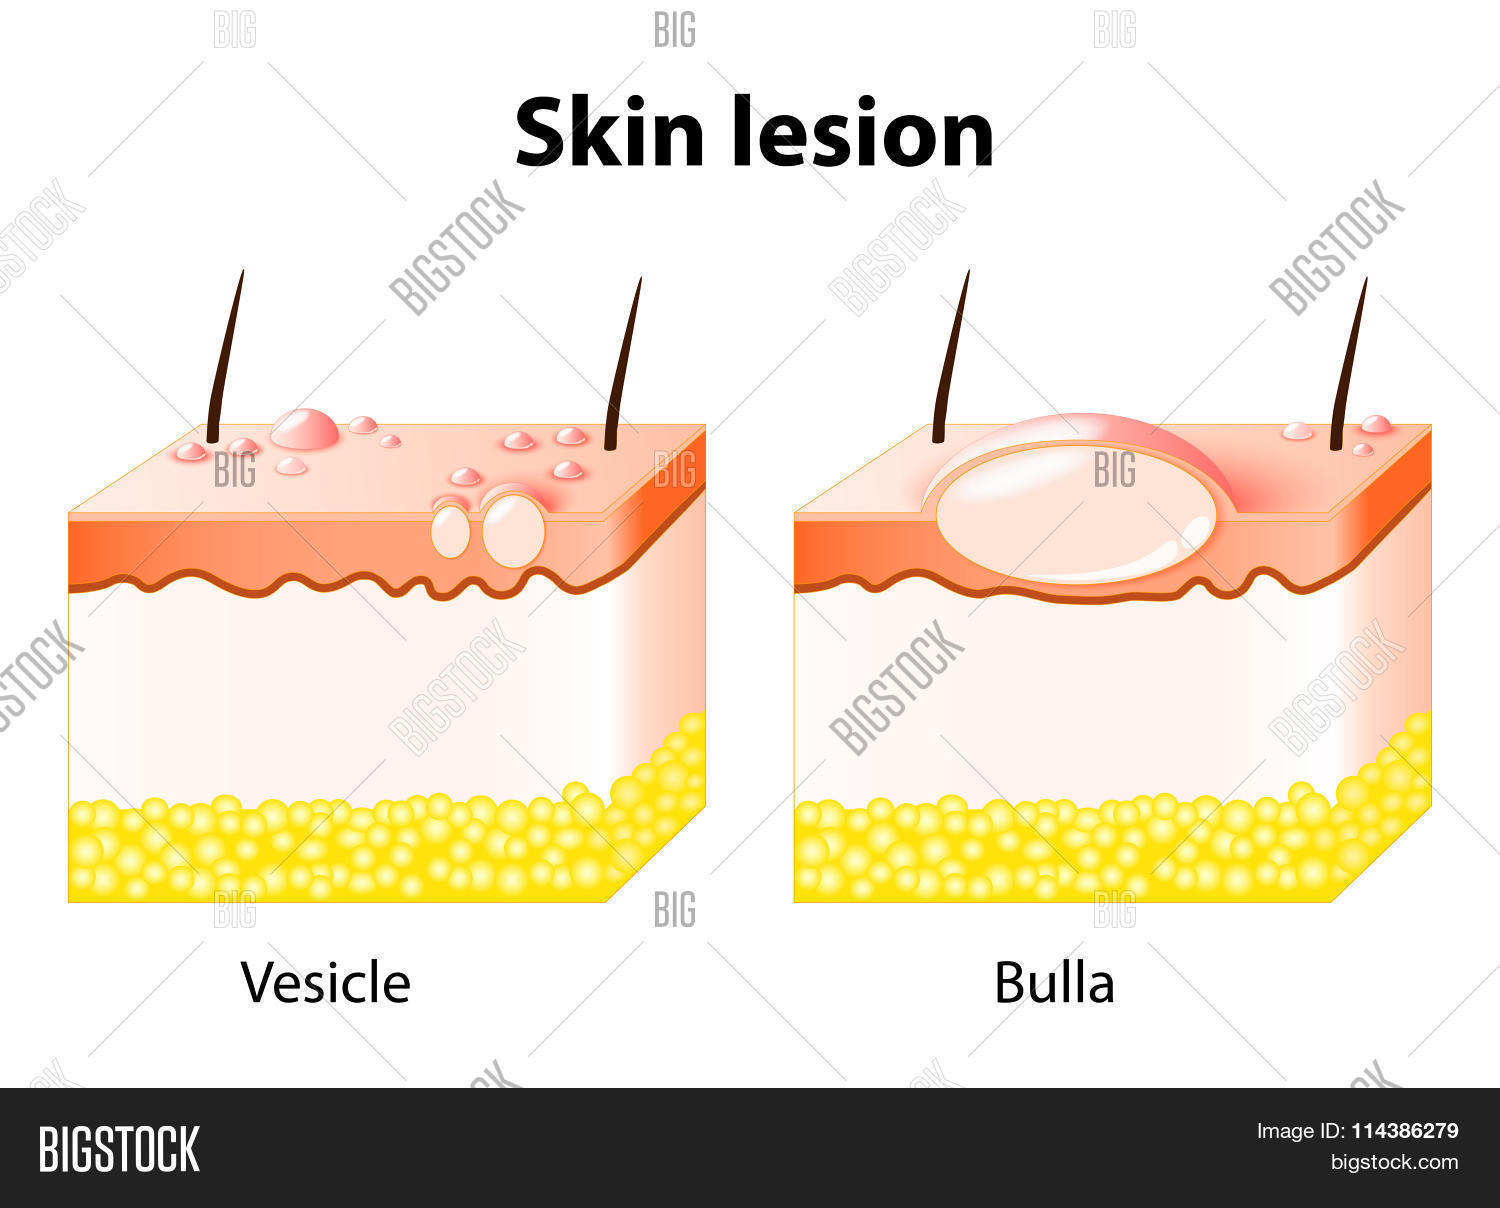 Vesicle Bulla. Skin Lesion Vector & Photo | Bigstock